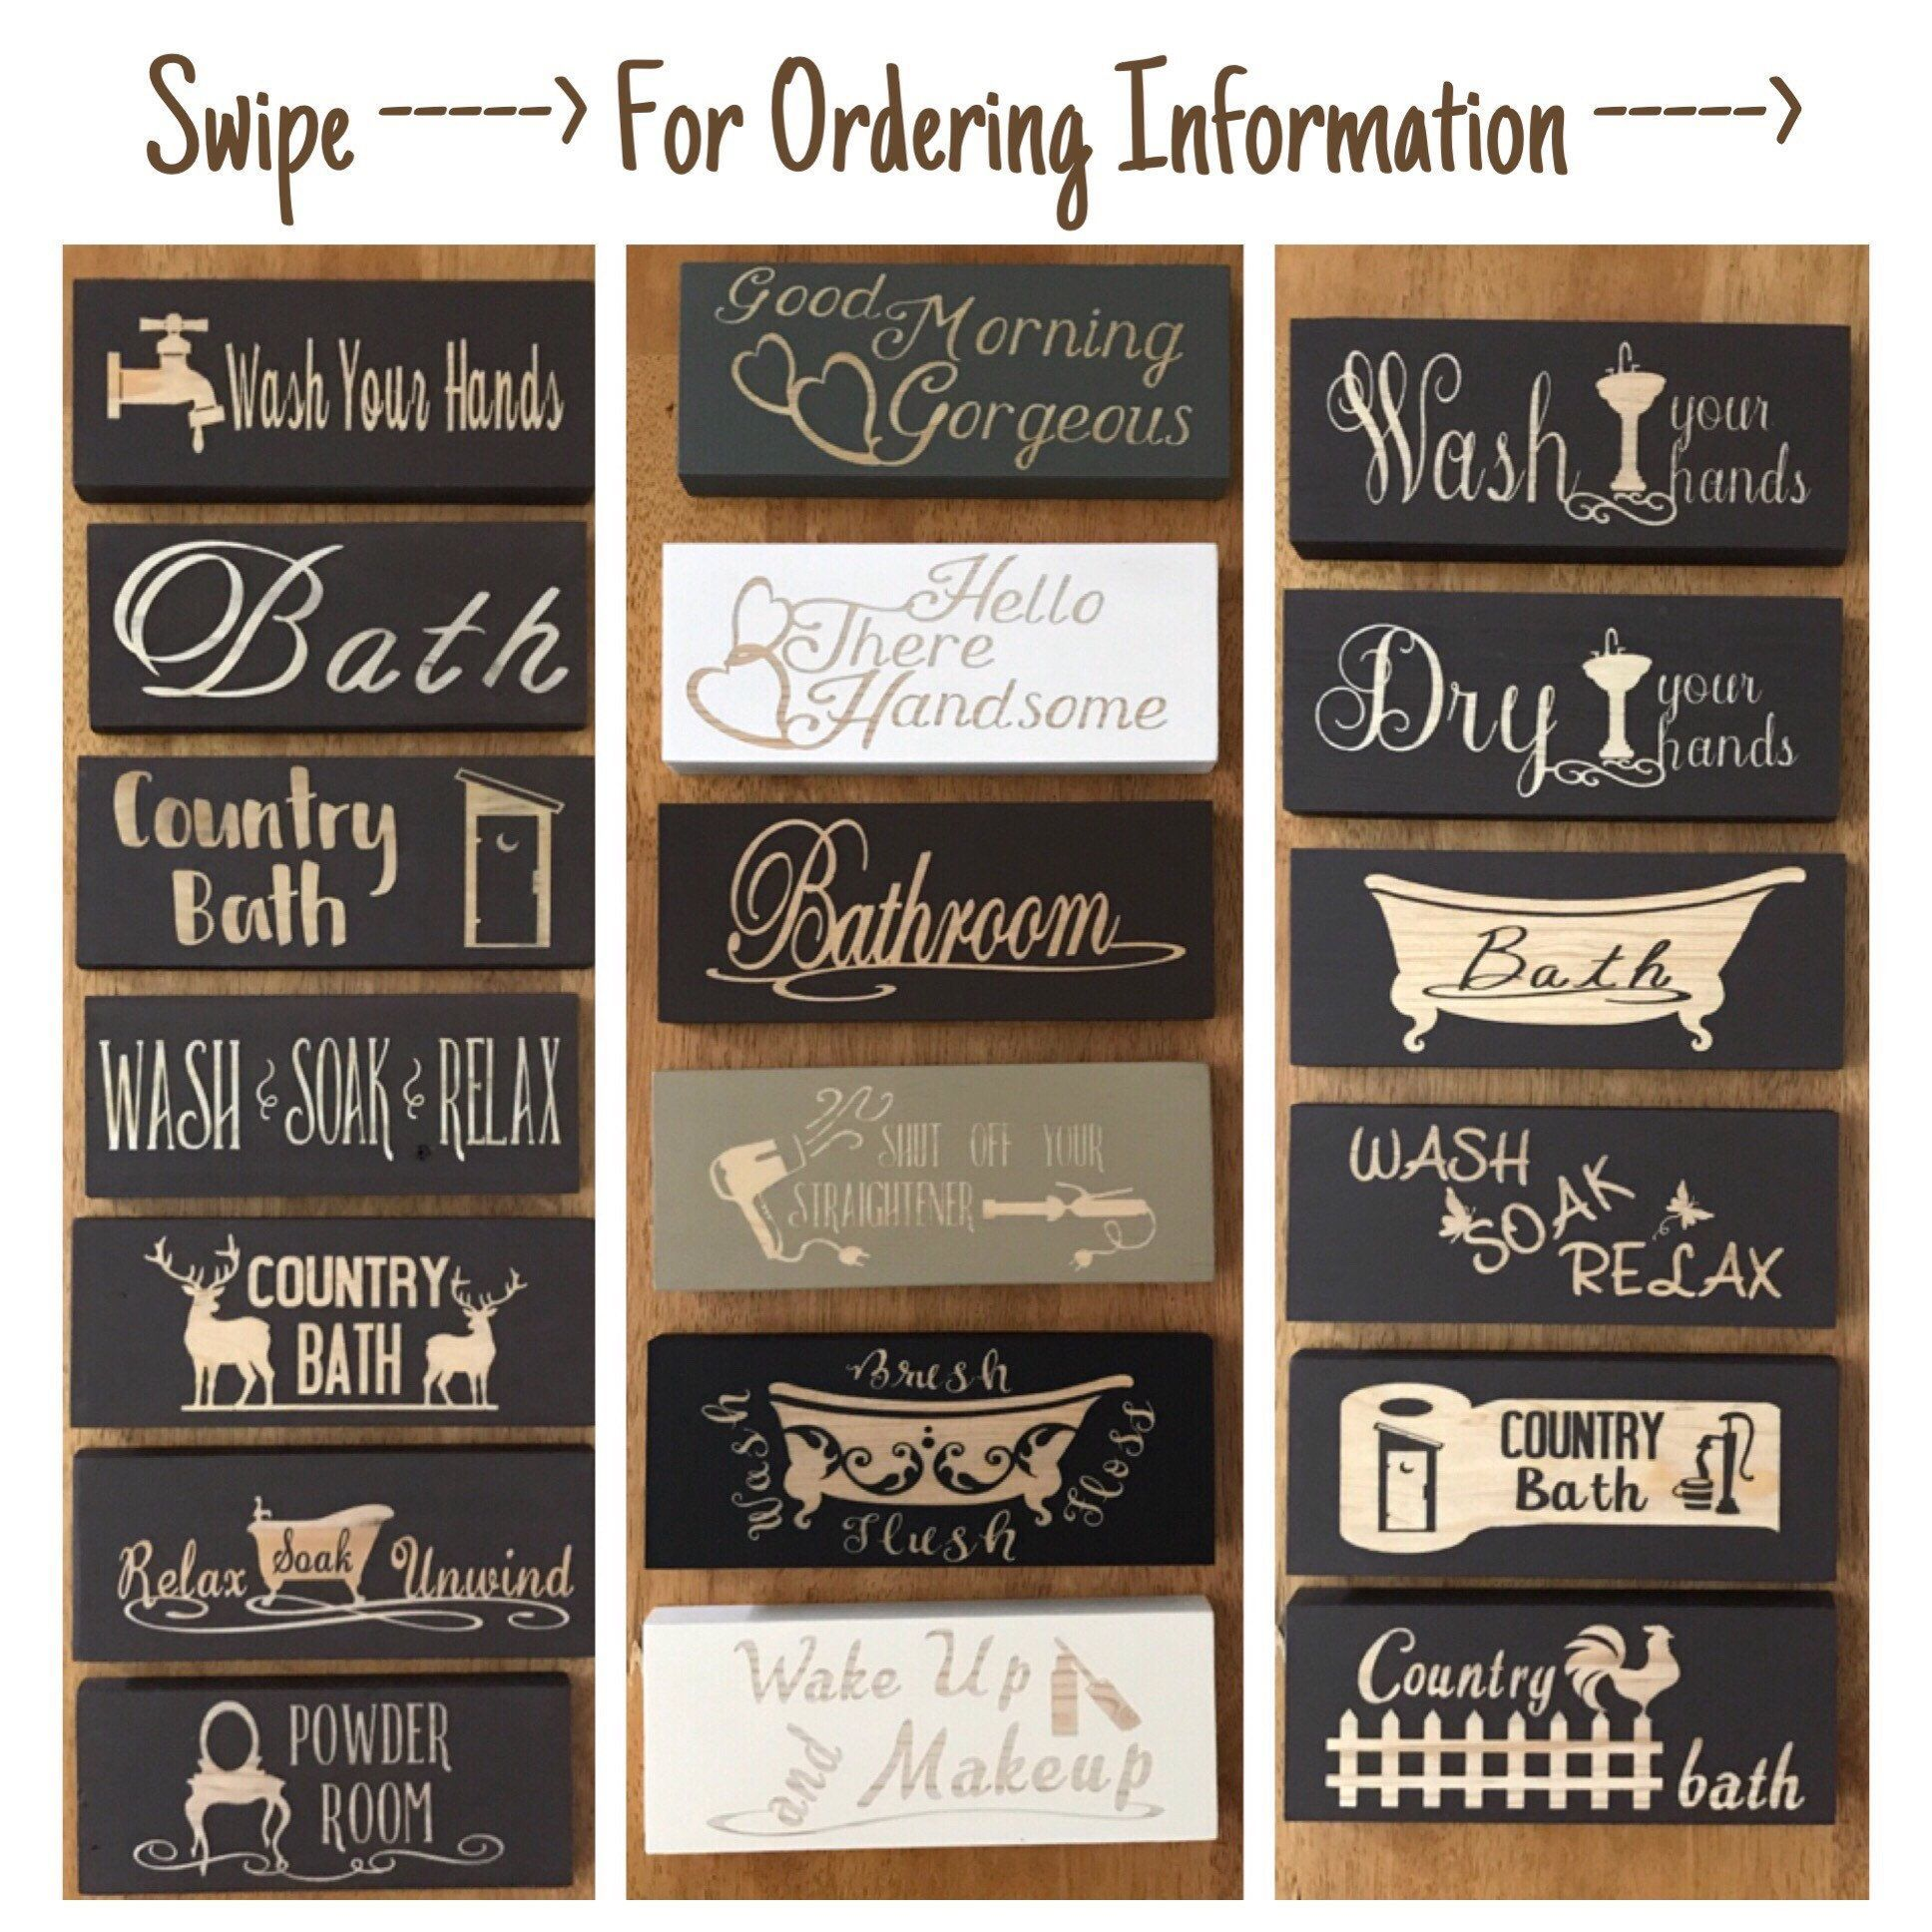 Bathroom Signs Bathroom Decor Wooden Signs Powder Room Sign Mini Wood Signs Rustic Home Decor Relax Powder Room Signs Bathroom Decor Signs Bathroom Signs